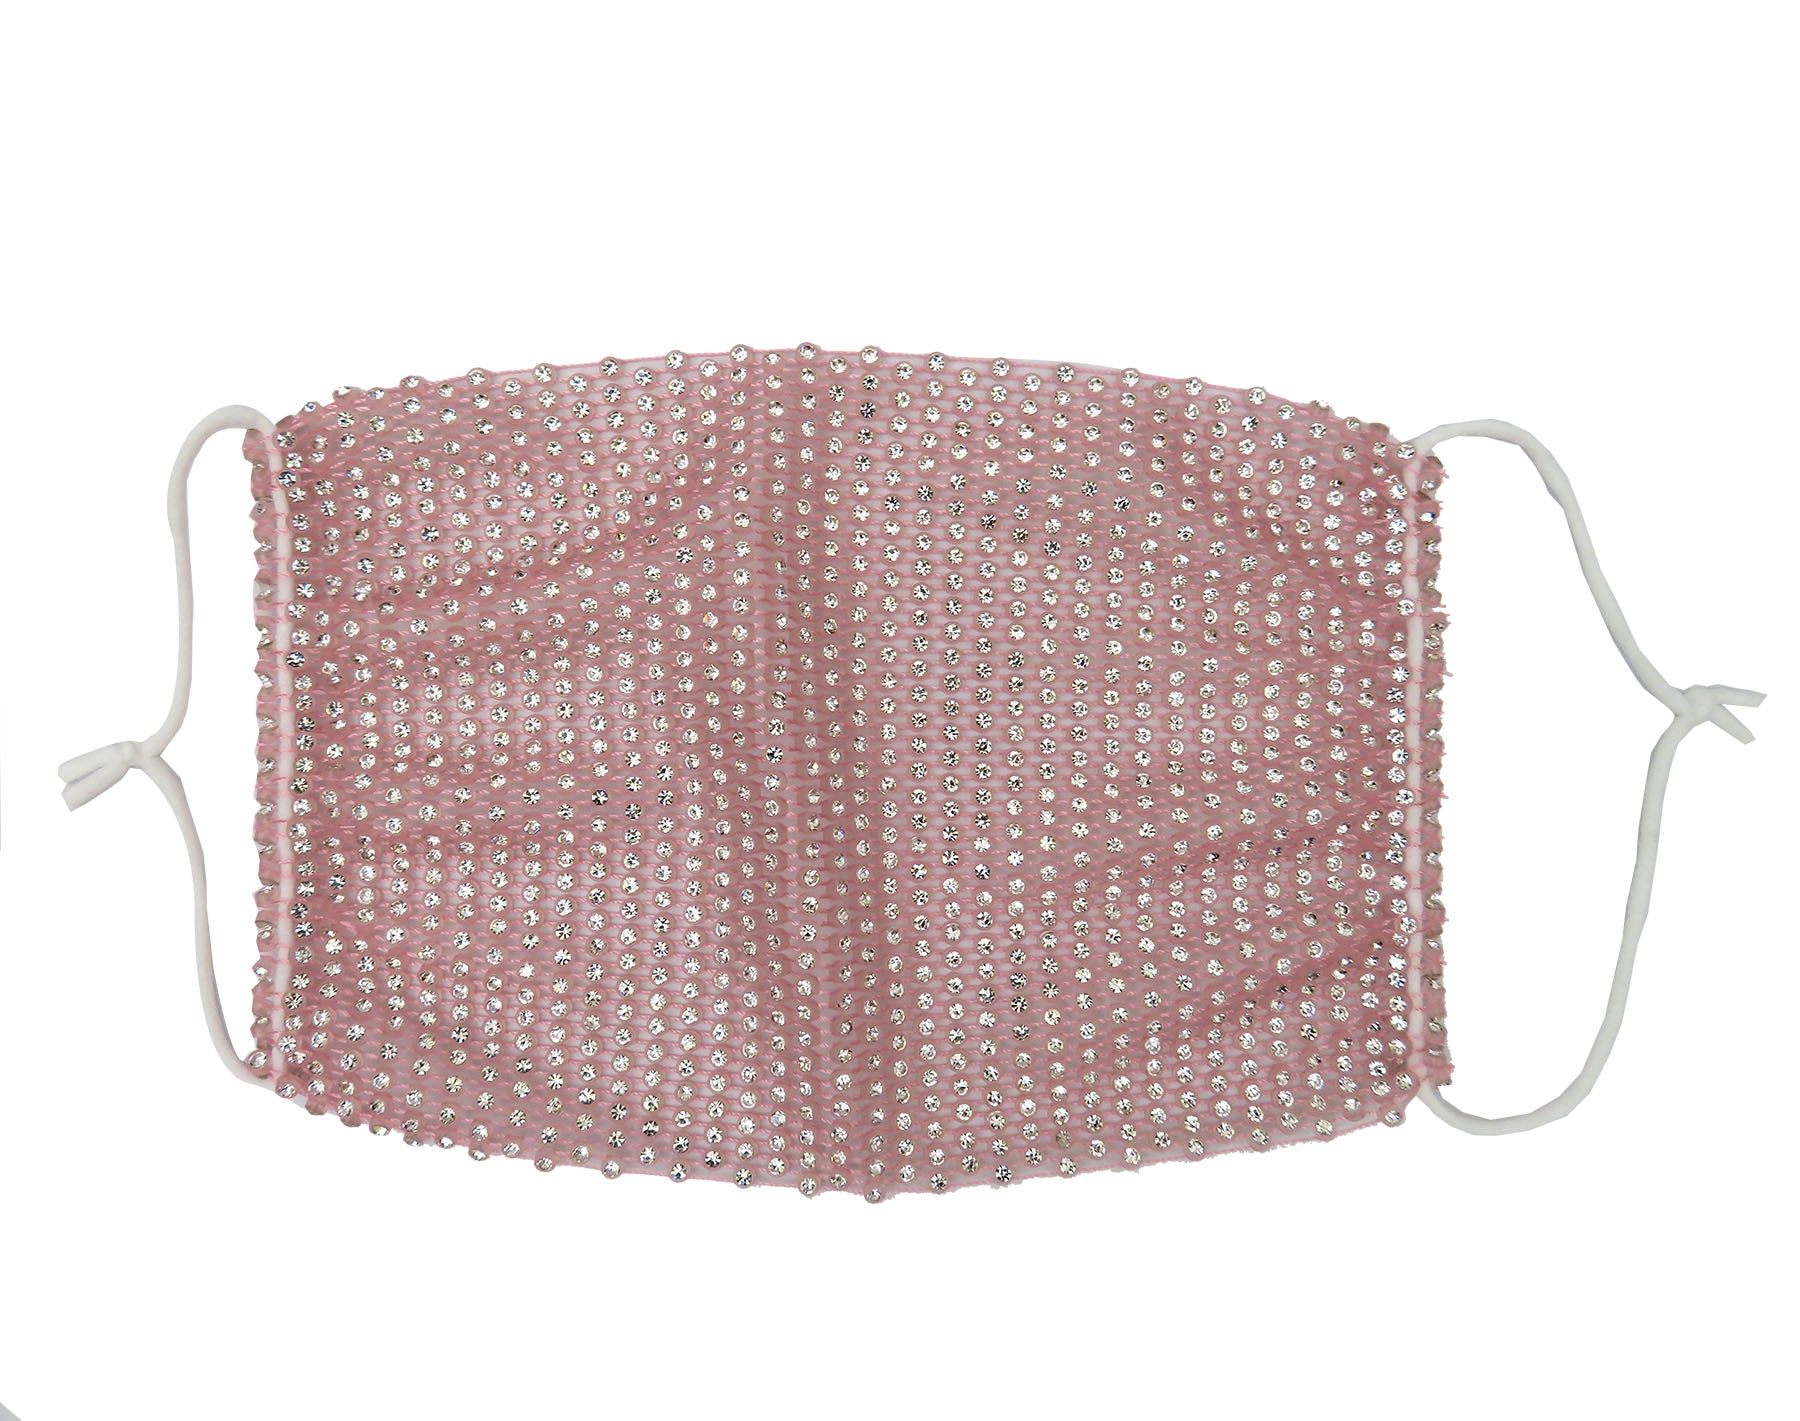 Bling Rhinestone Stretchable face mask, Reusable washable, Fashionable Triple layer